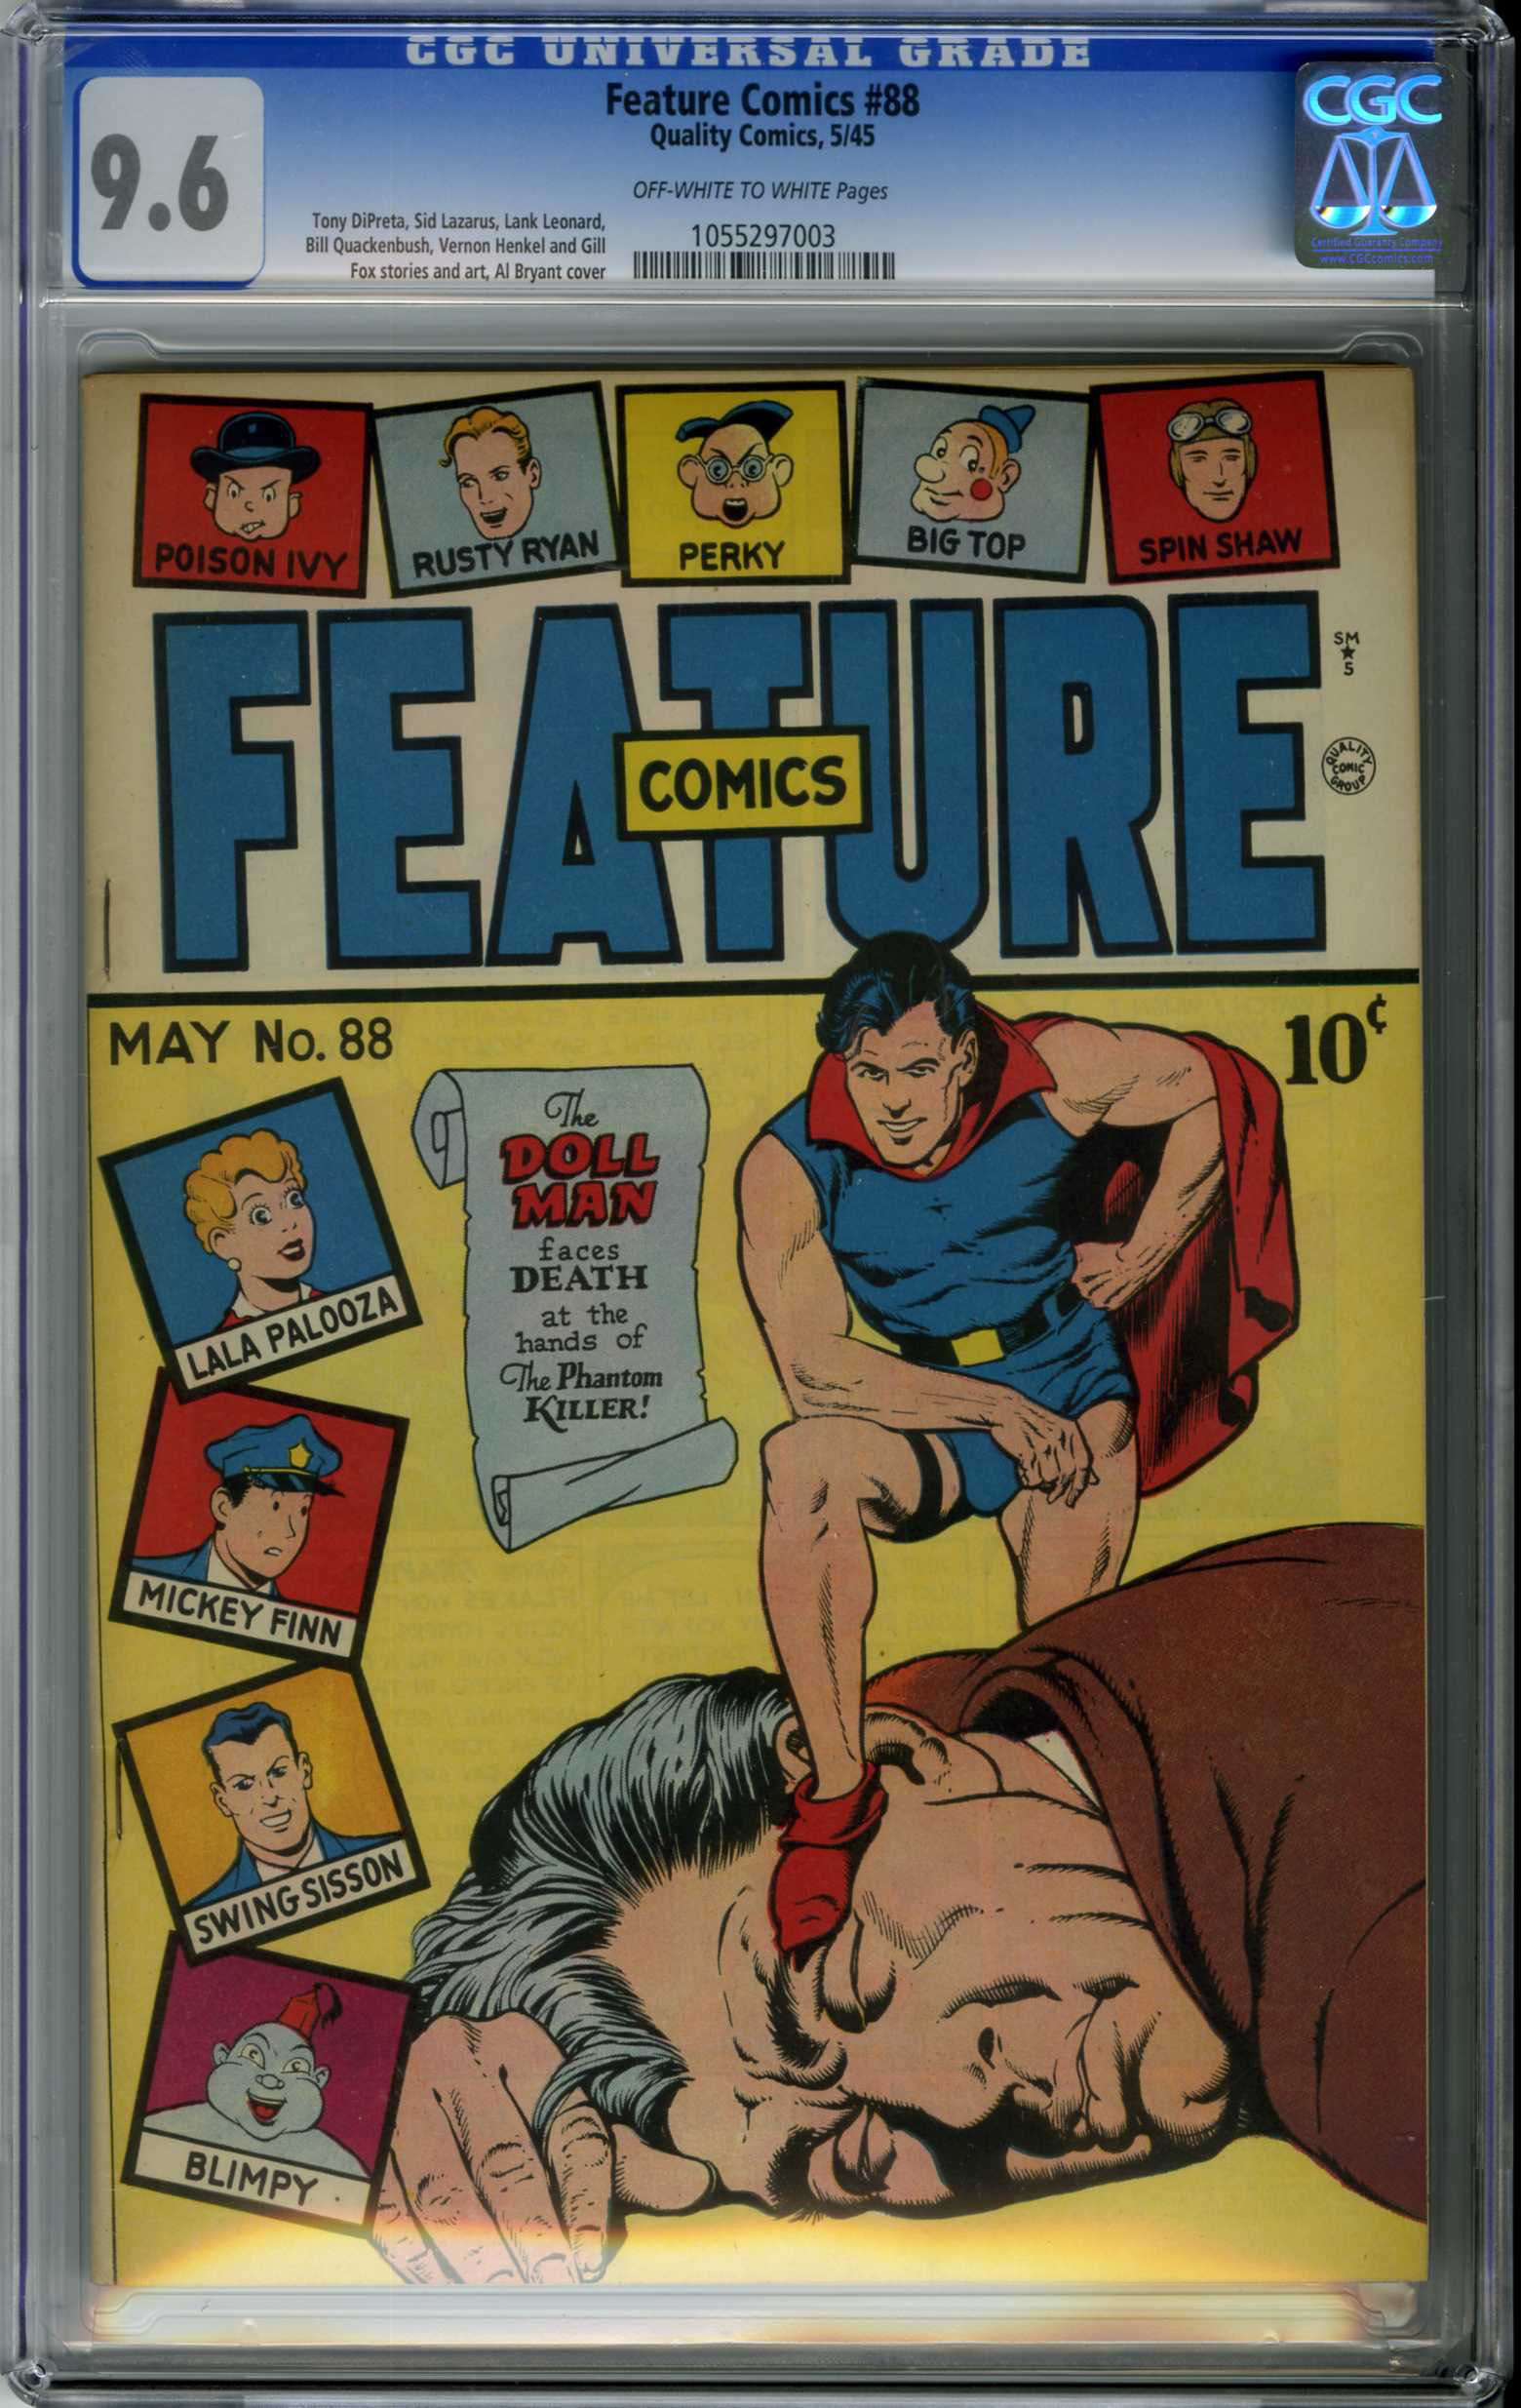 FEATURE COMICS #88 (1945) CGC NM+ 9.6 OWW Pages / DOLL MAN / AL BRYANT COVER